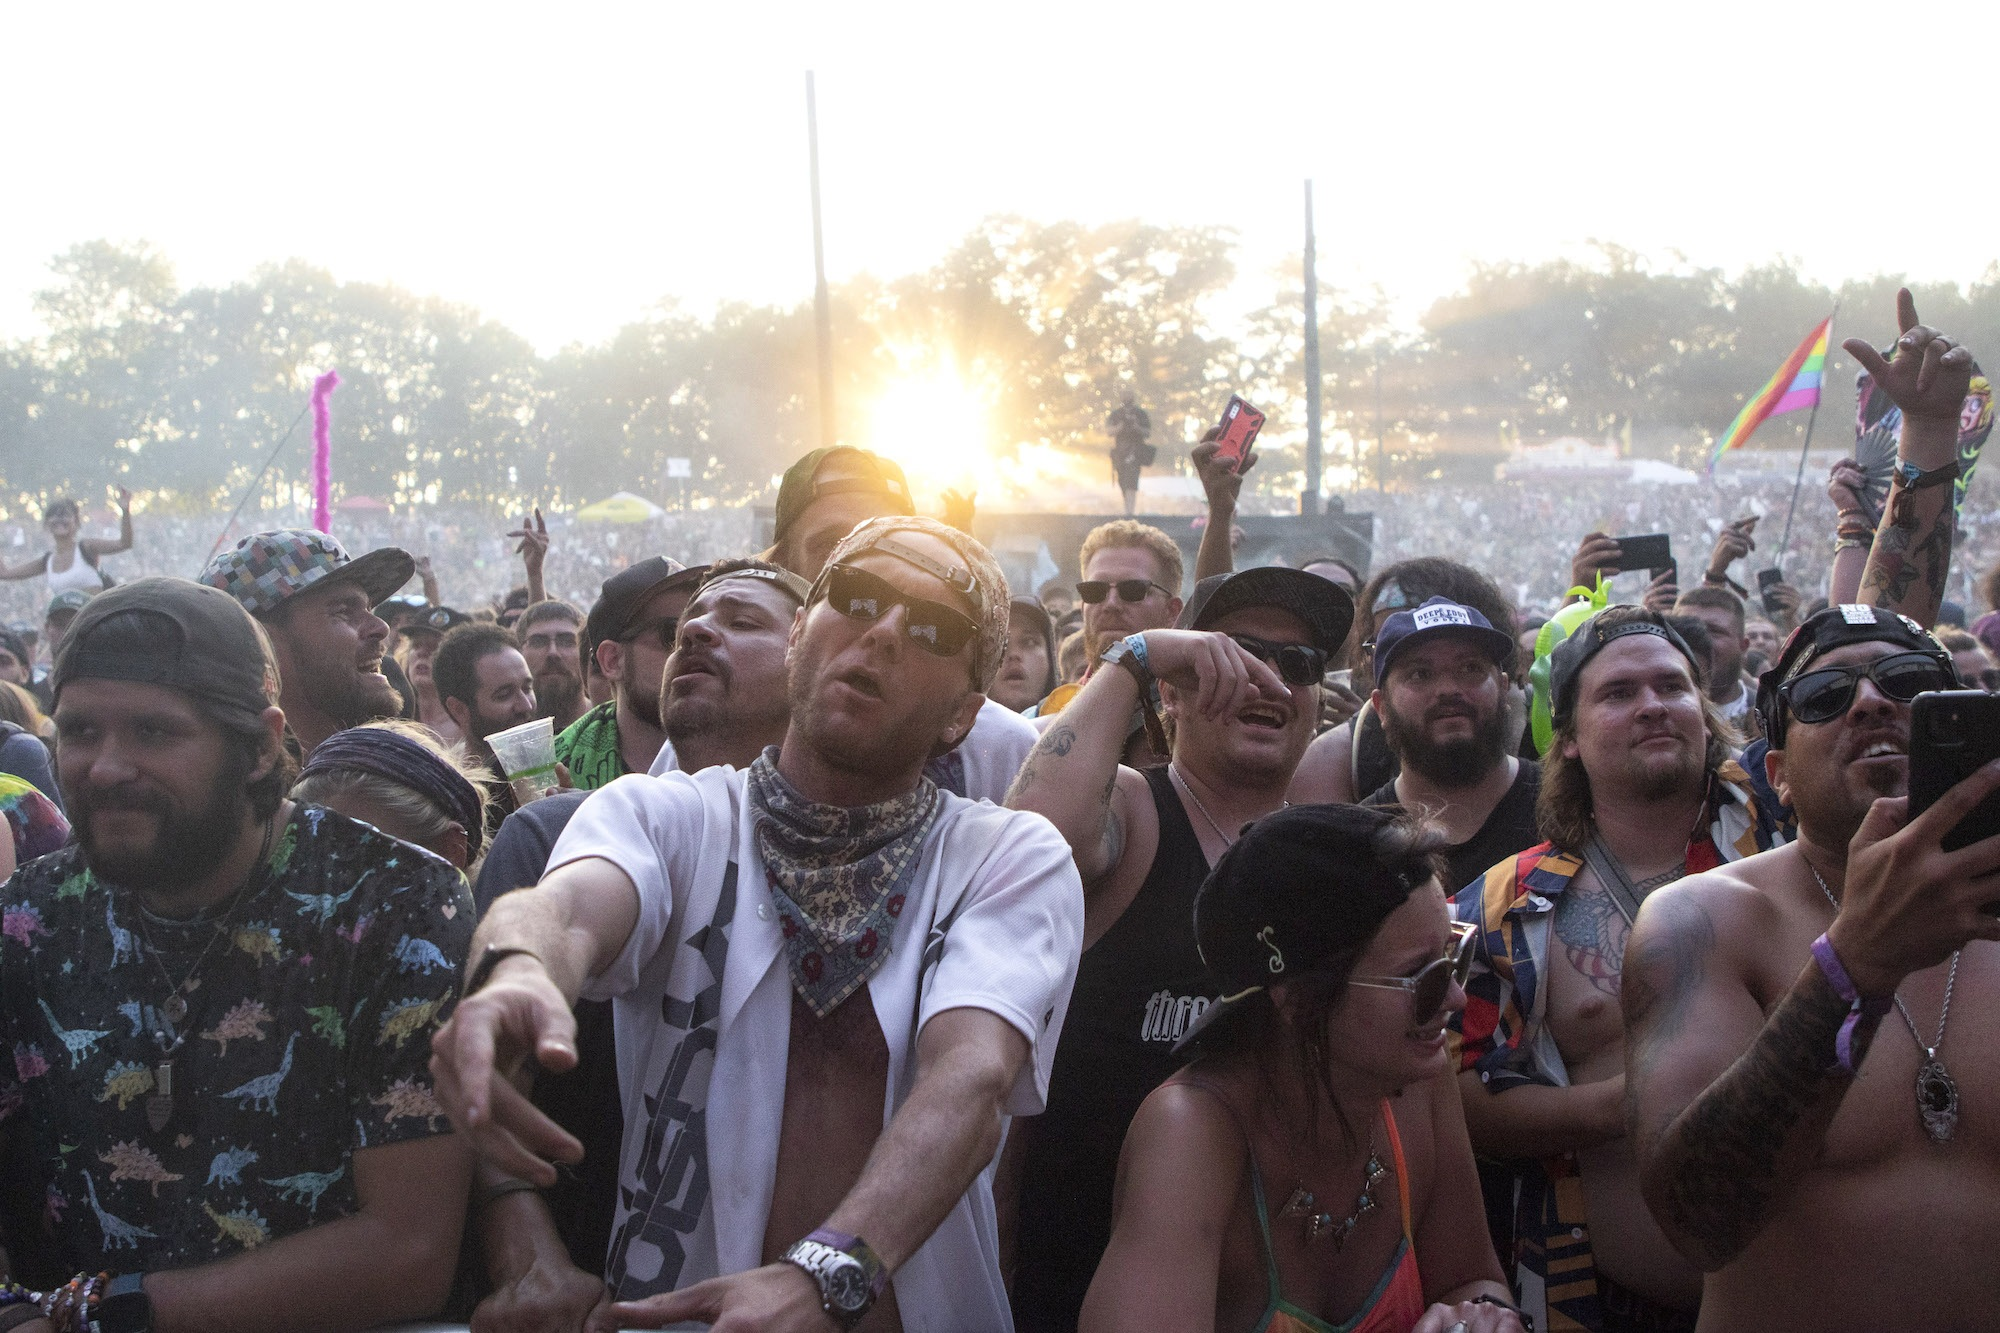 Summer Camp Music Fest - Day 2 [GALLERY] 11